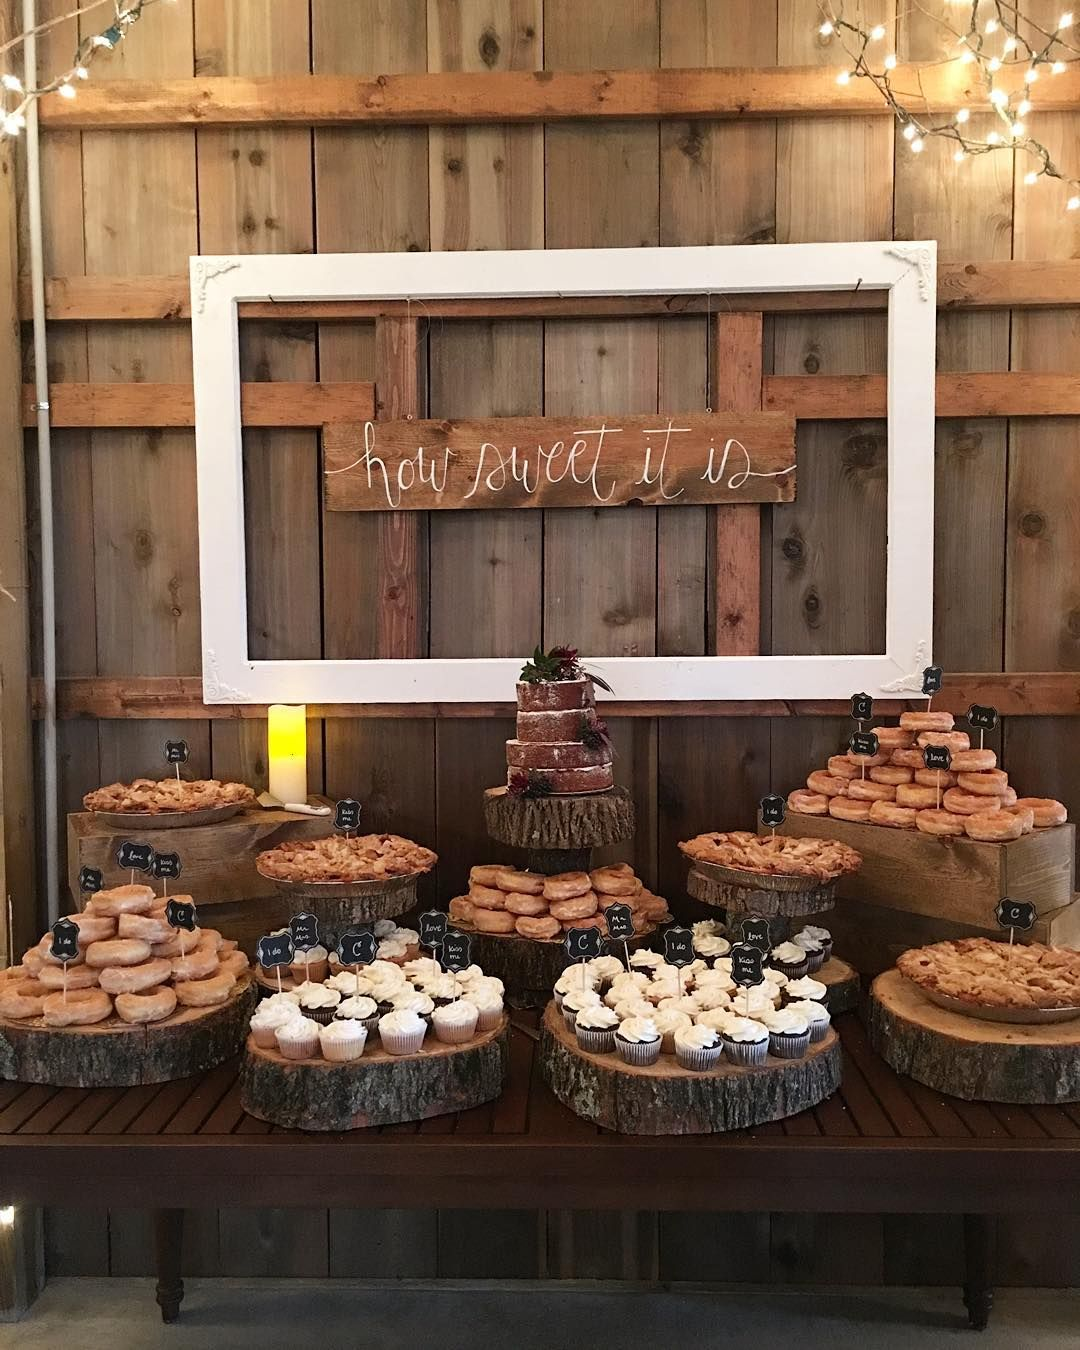 Wedding Cake Tables Decorating Ideas: Cupcakes, Donuts And Pies At The Dessert Table